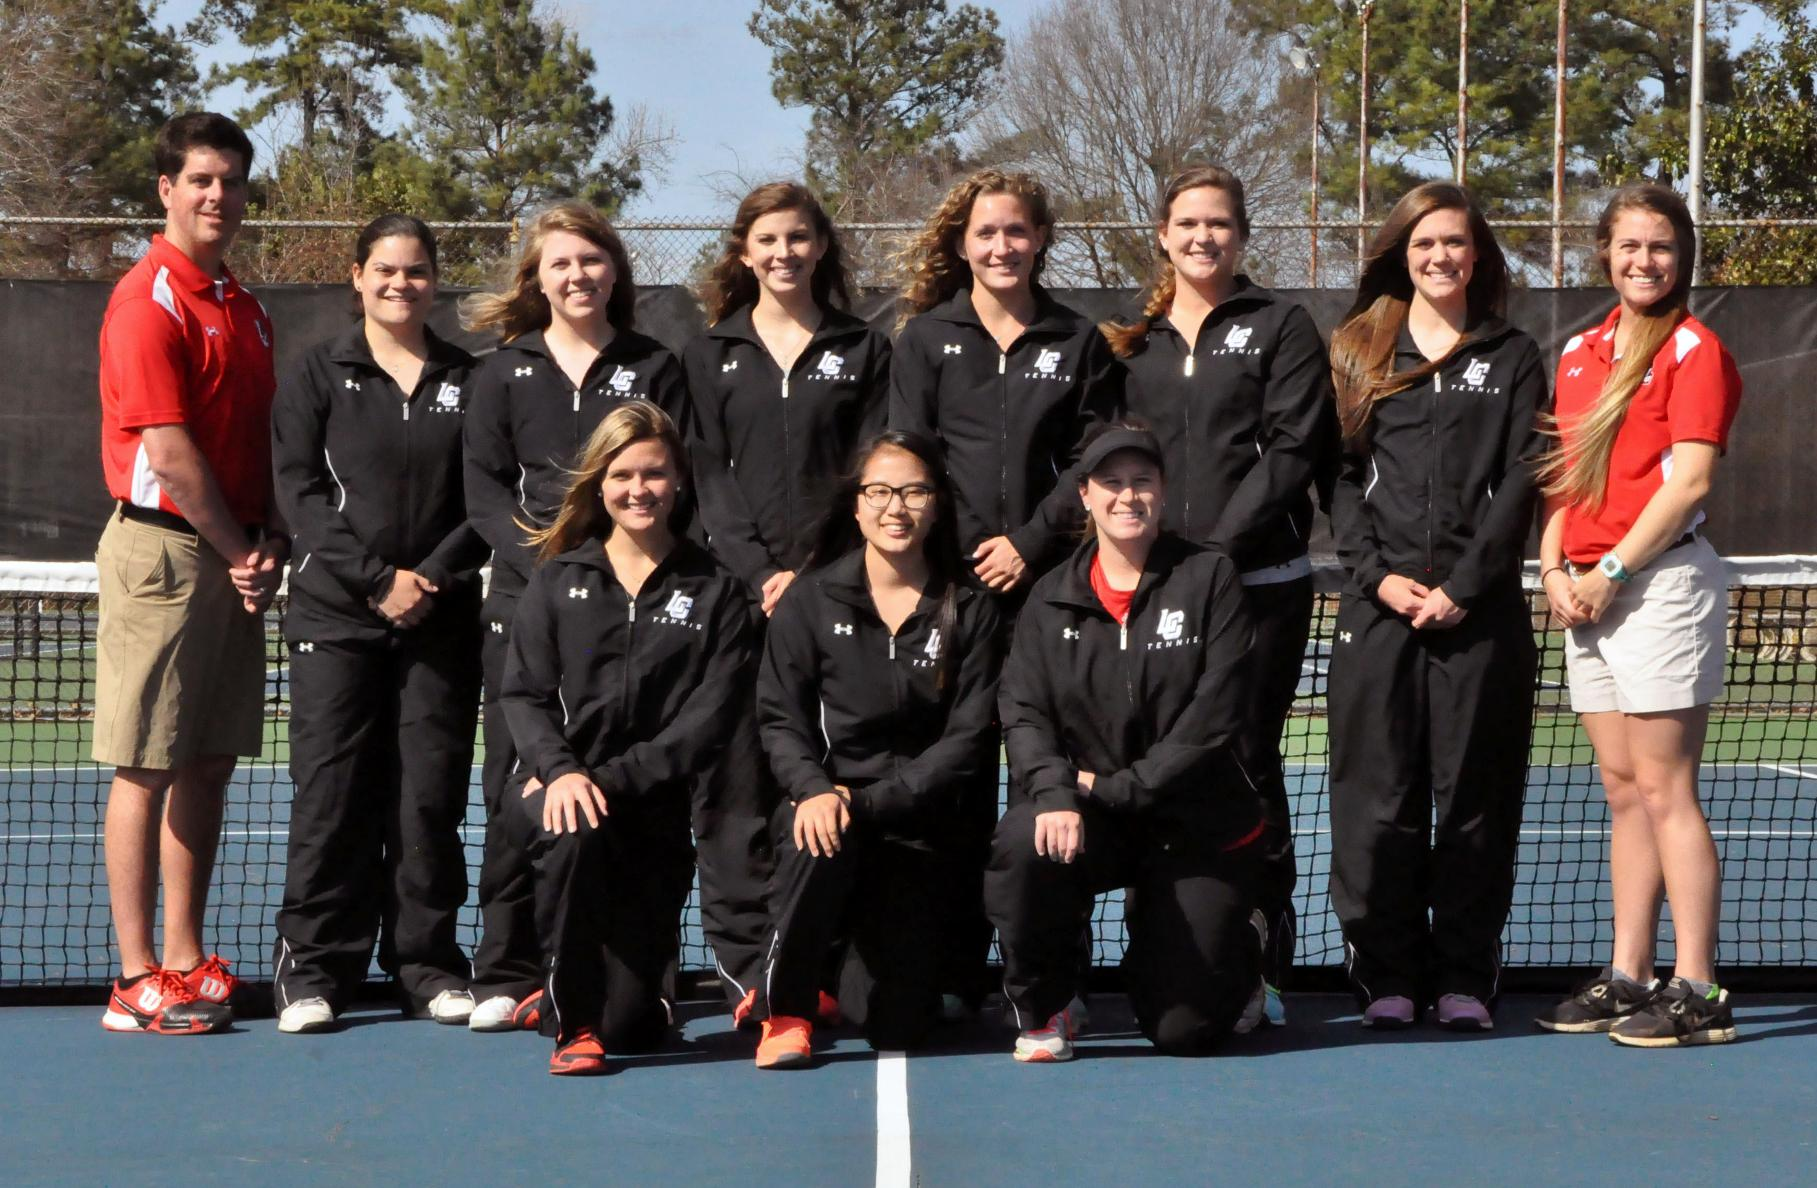 Women's Tennis: LC earns ITA All-Academic team award for fourth straight year